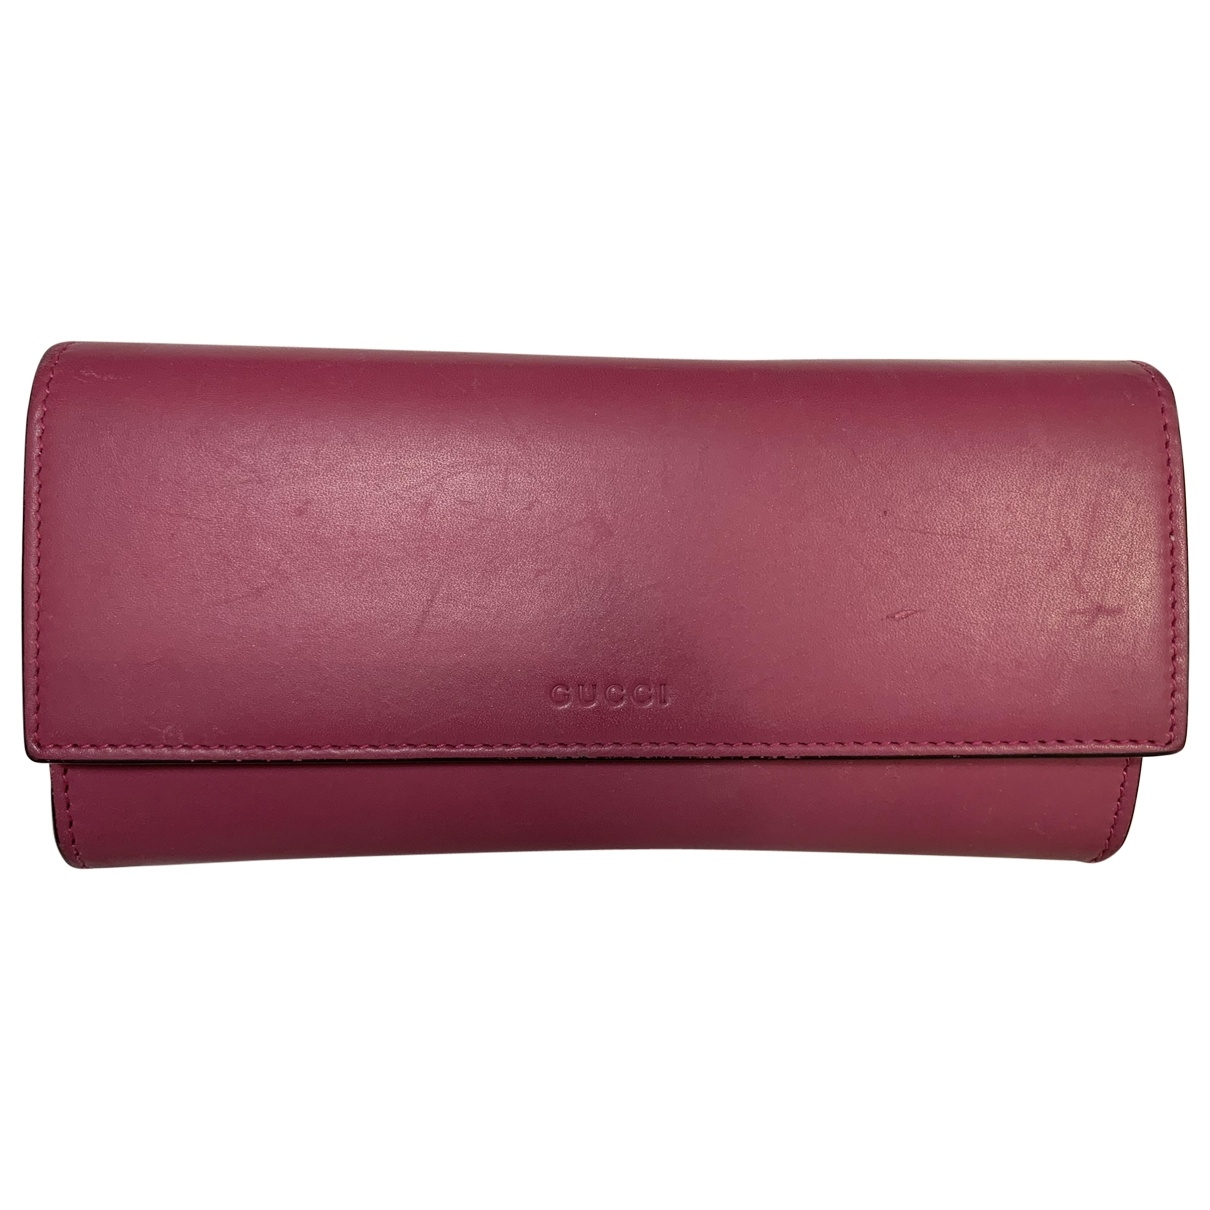 Gucci \N Burgundy Leather wallet for Women \N